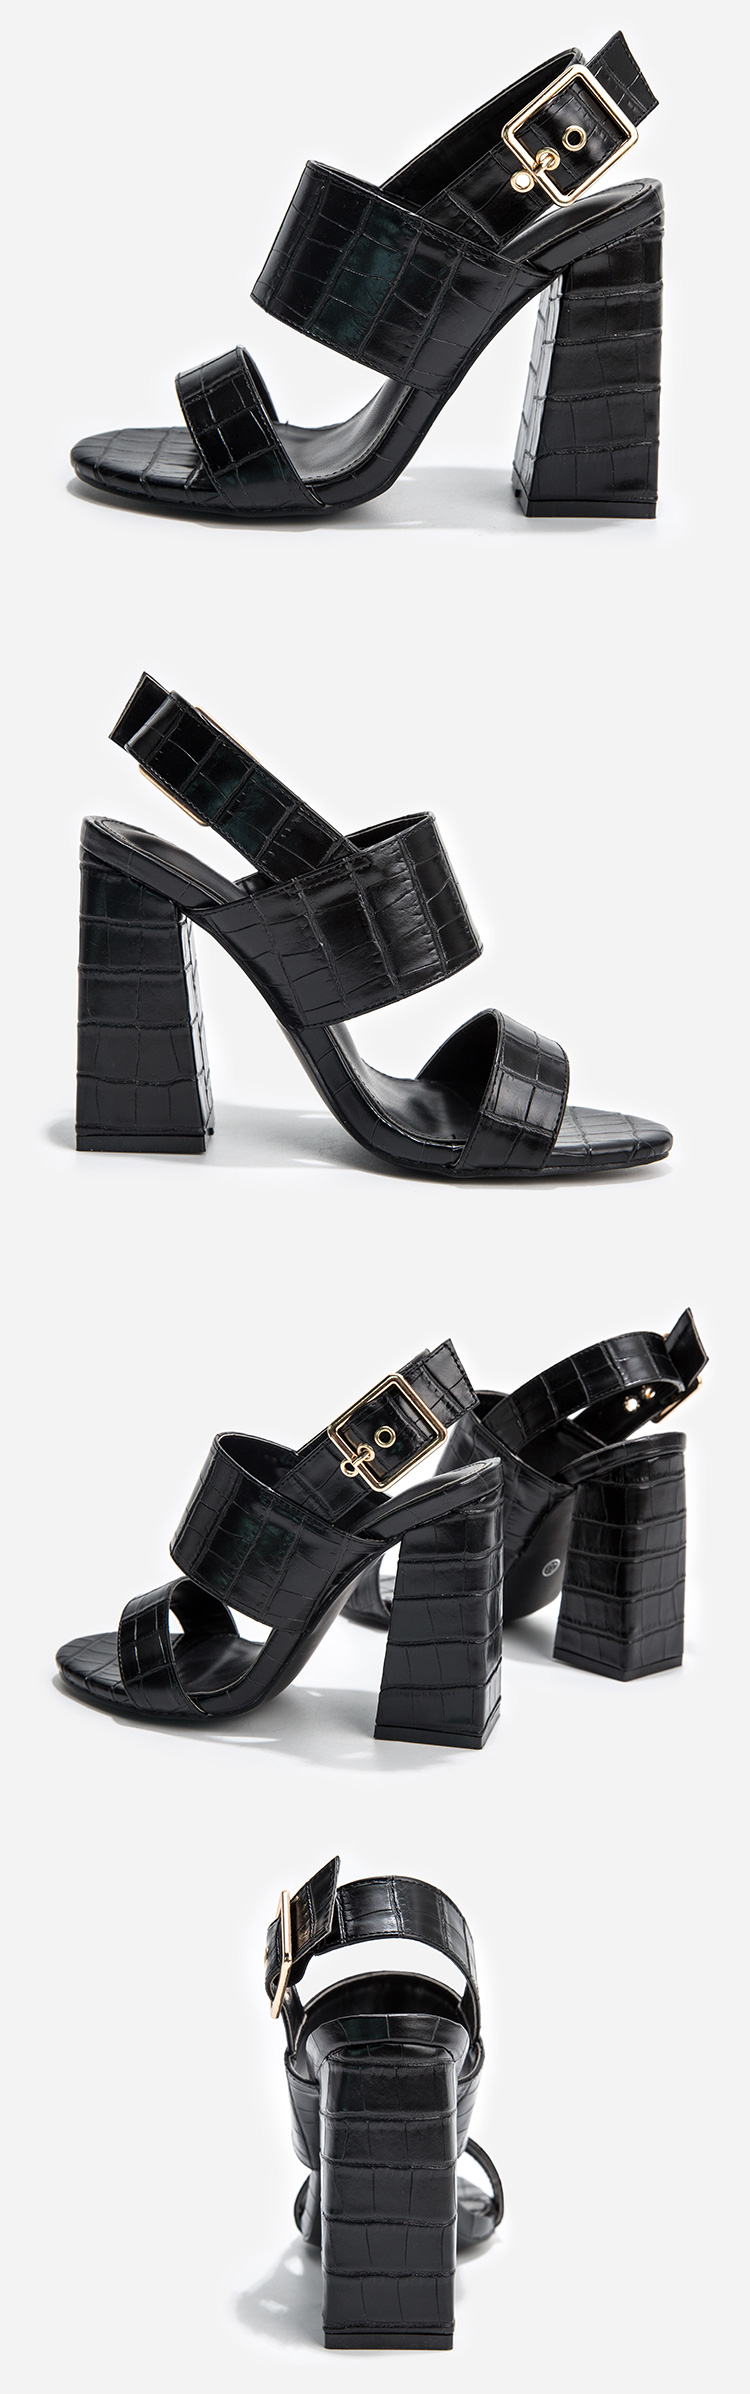 2020 new fashion designs sexy sandals for women and ladies block high heels leather dress shoes